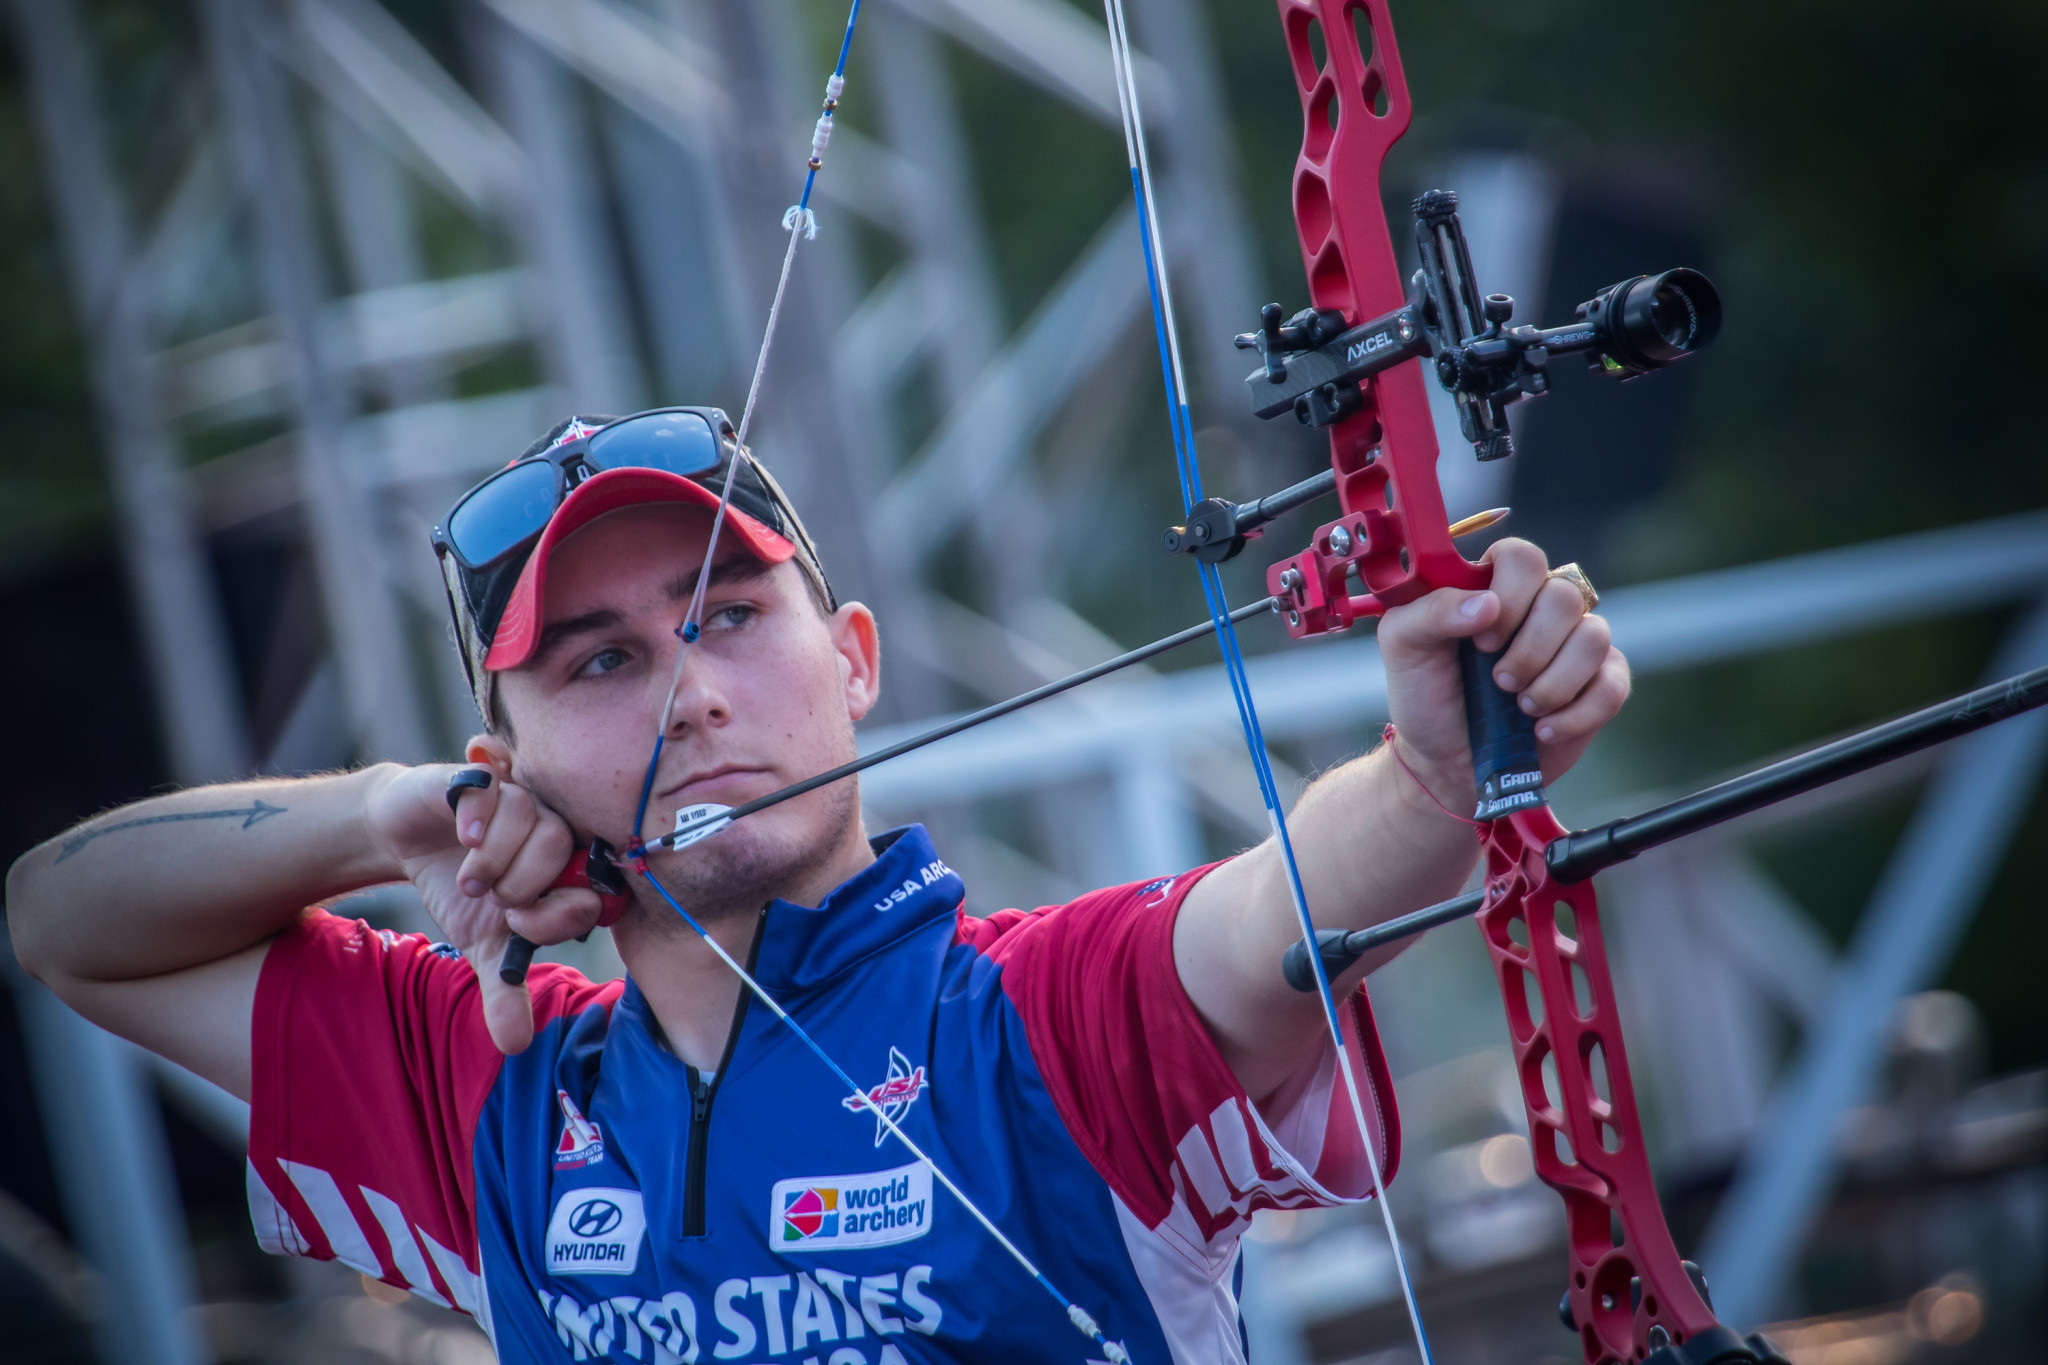 Americans set to defend titles as World Archery Championships come to Yankton